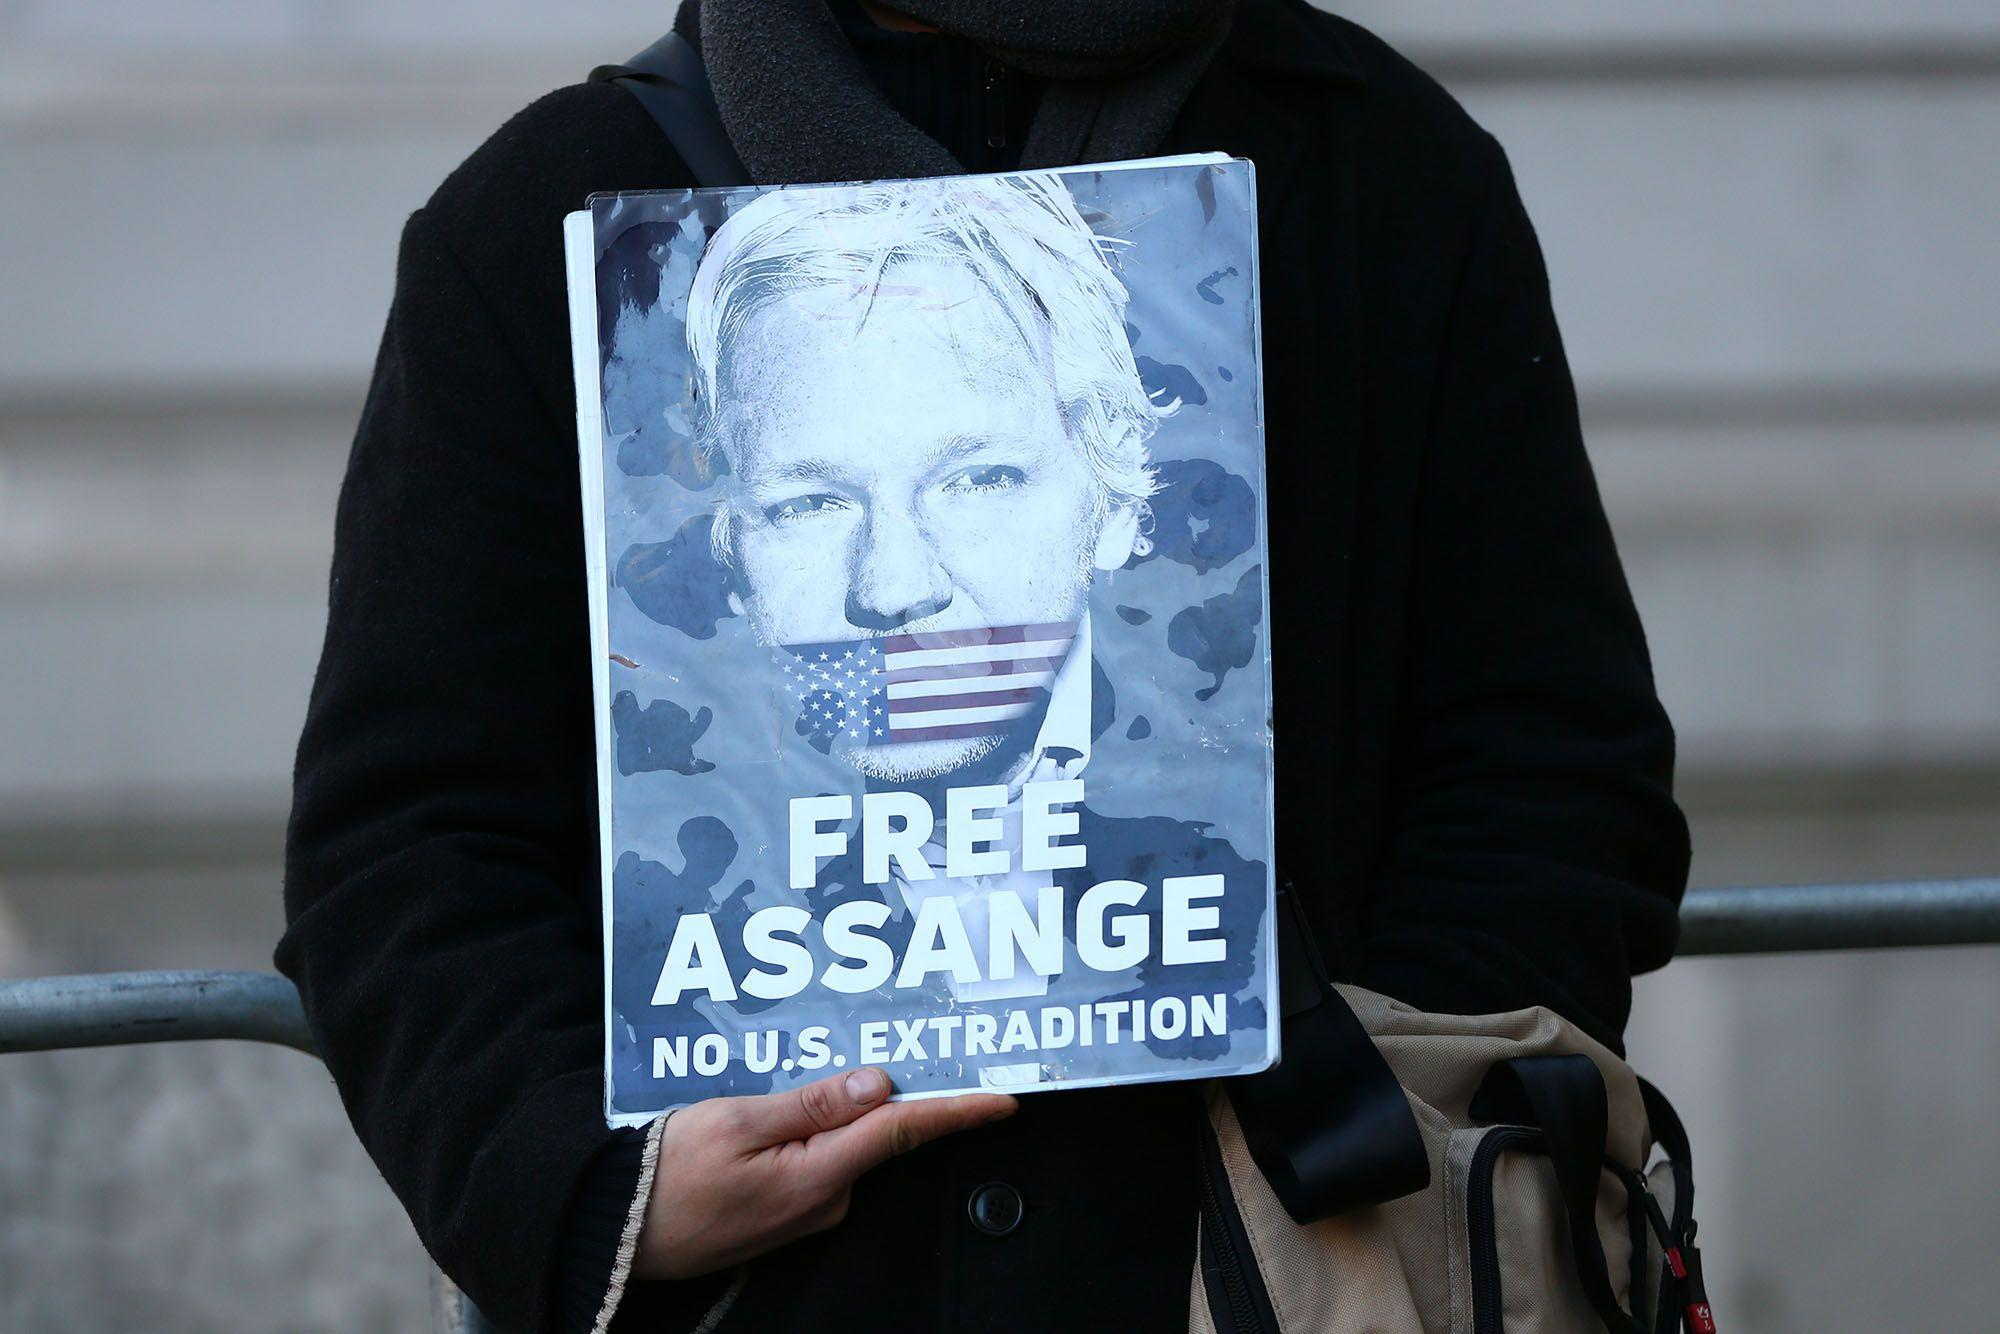 Sweden drops rape charges against WikiLeaks founder Julian Assange